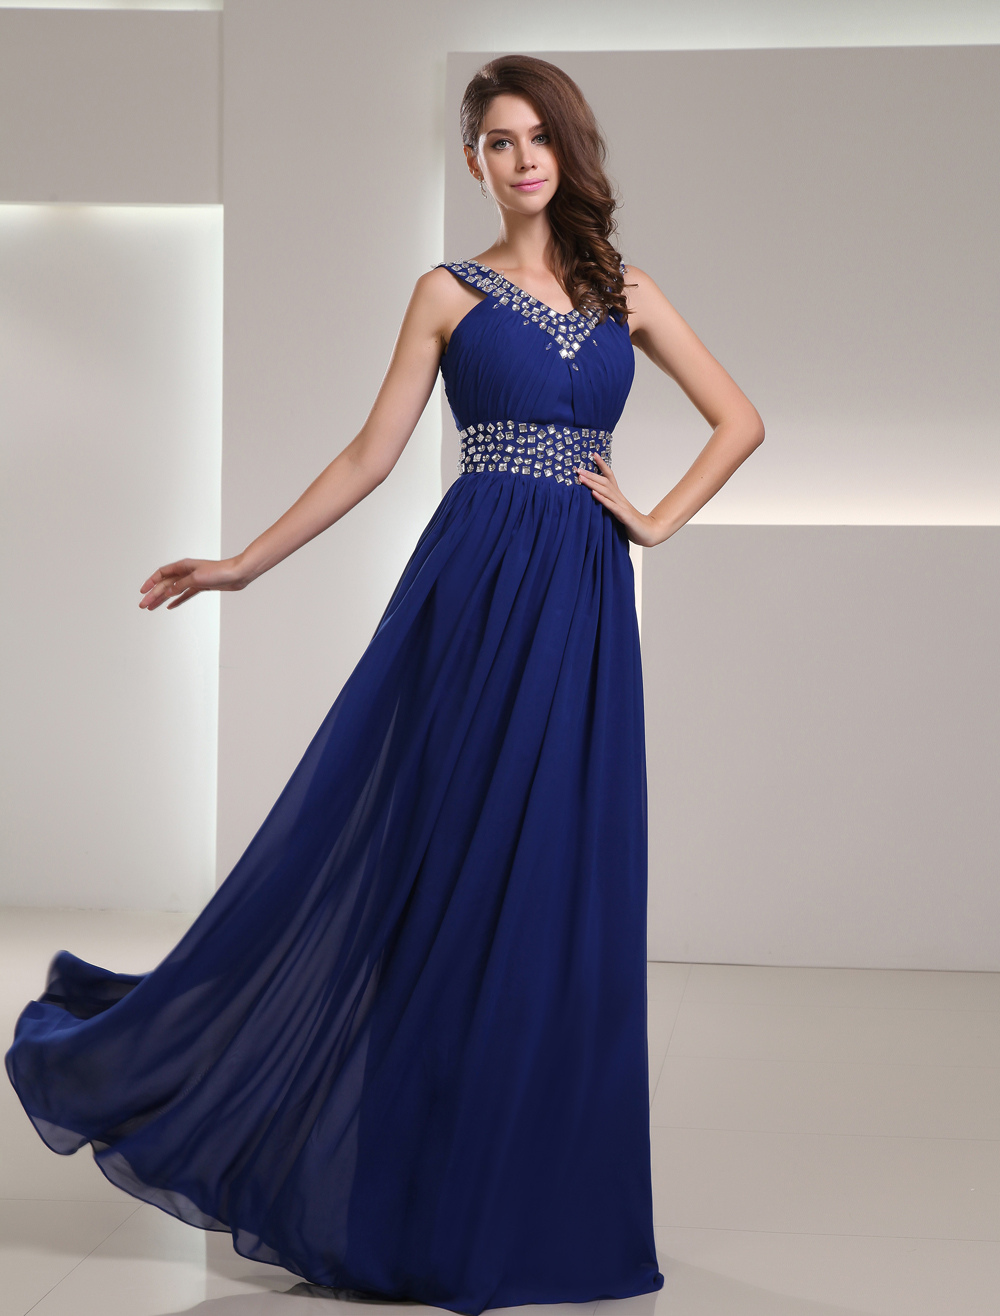 Royal Blue Chiffon Empire Waist Prom Dress with V-Neck Sleeveless Rhinestone